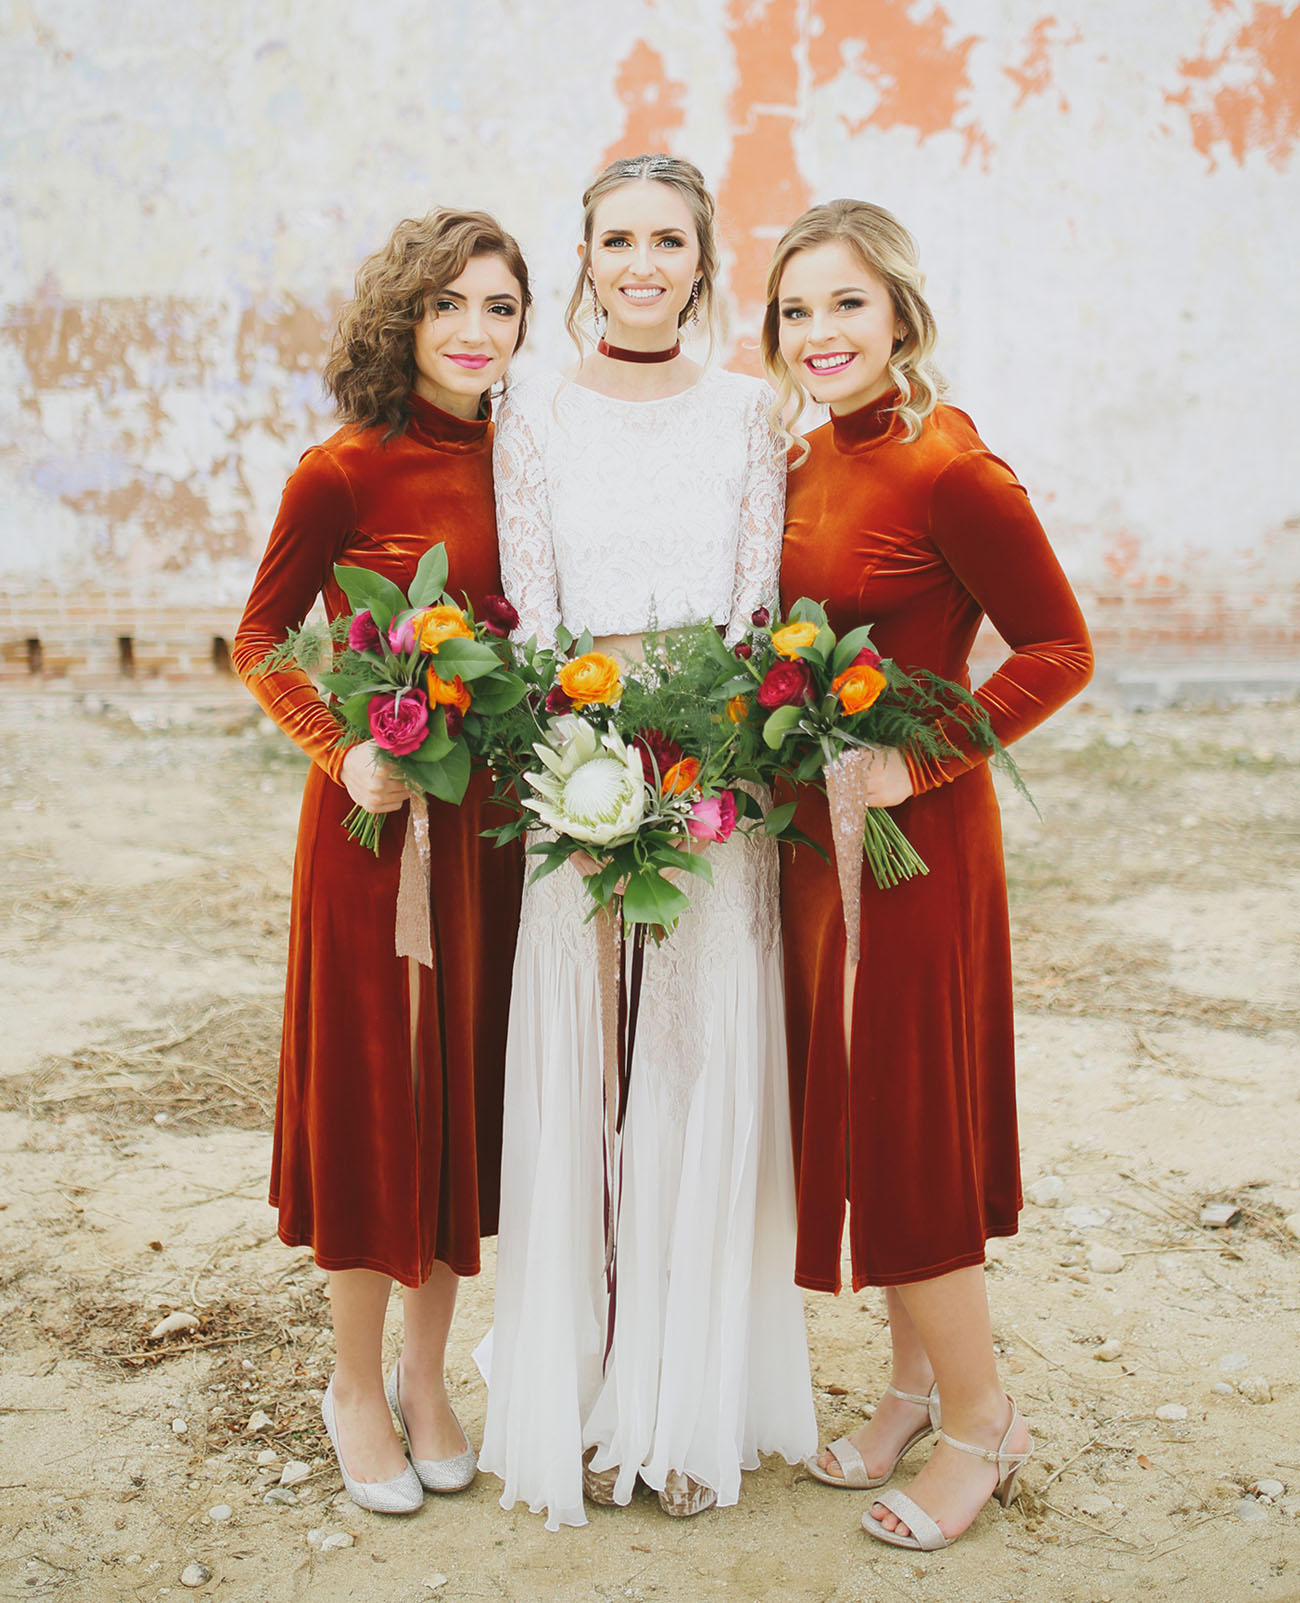 velvet wedding bride and bridesmaids